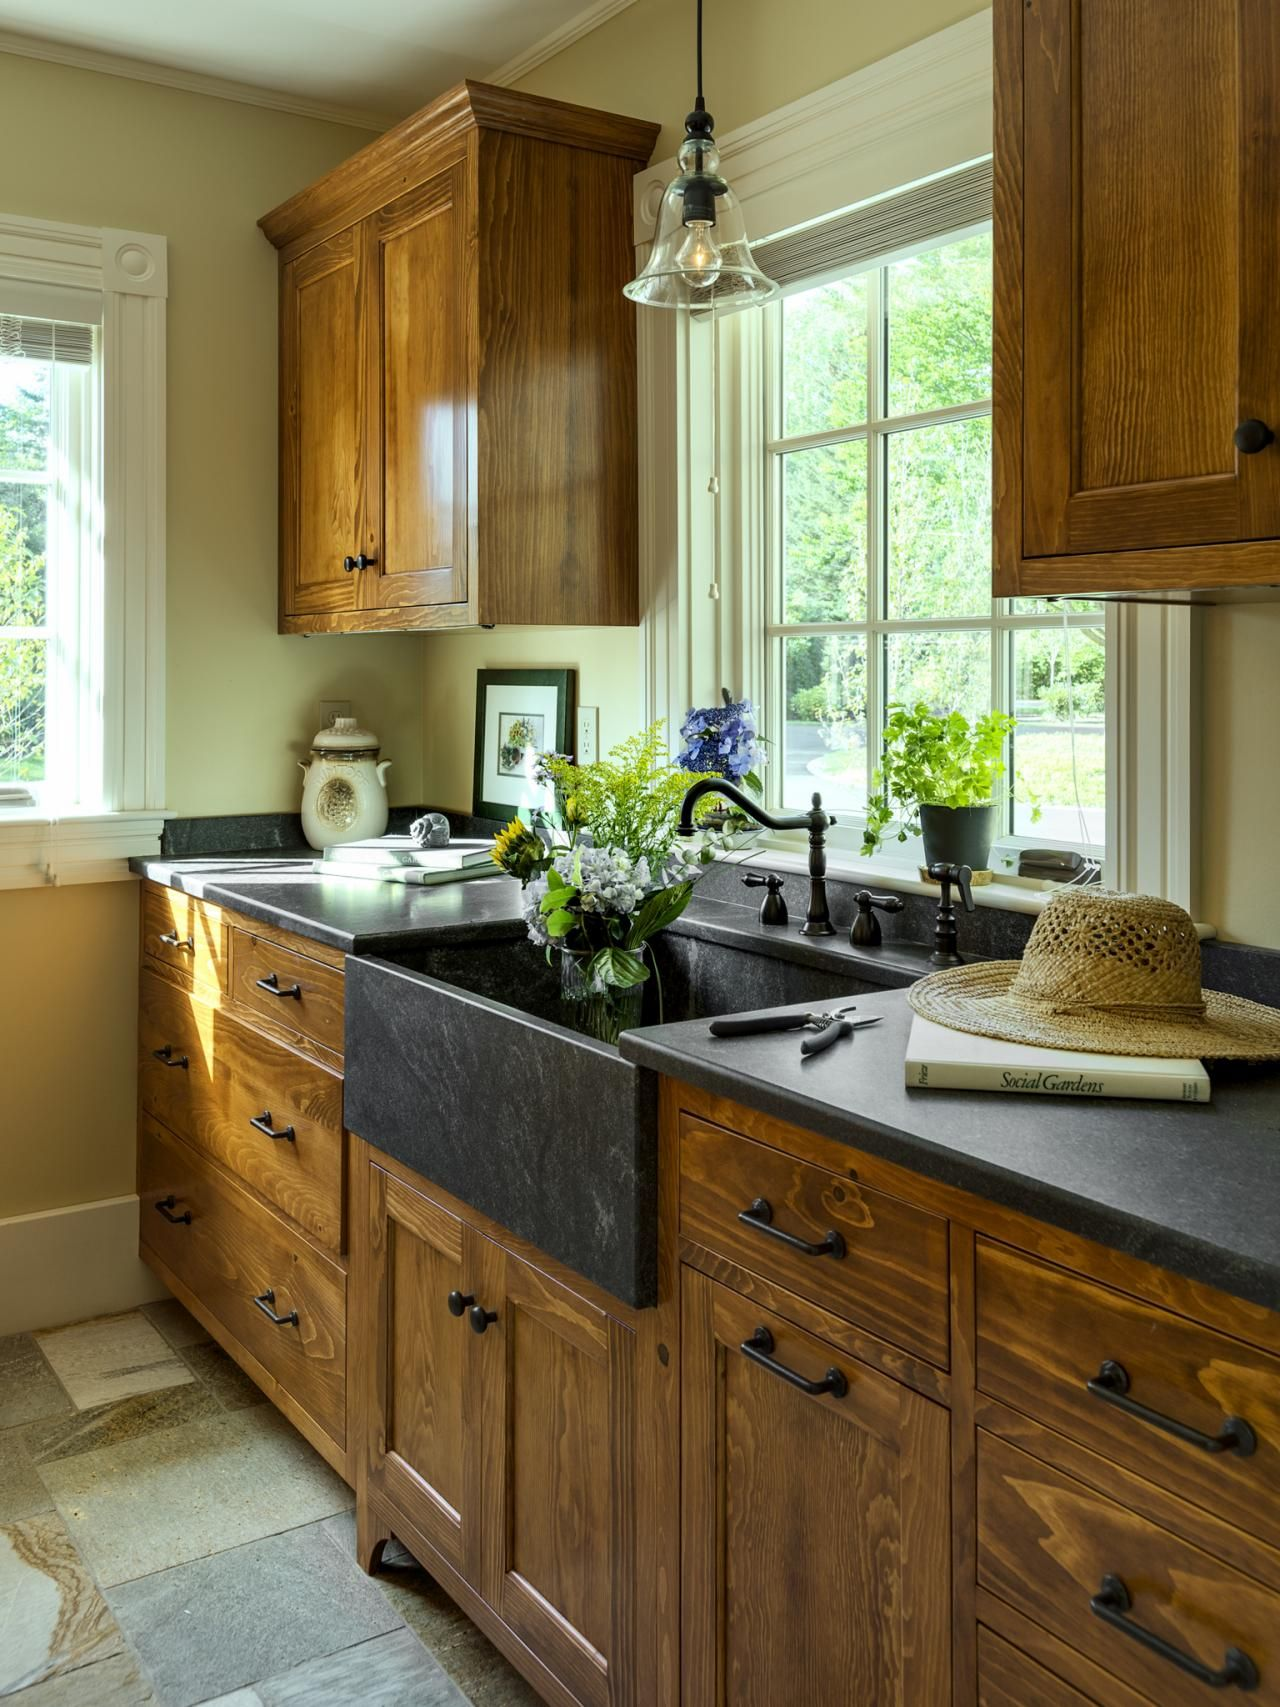 Top 50 Pinterest Gallery 2014 Hgtv, Sinks and Kitchens